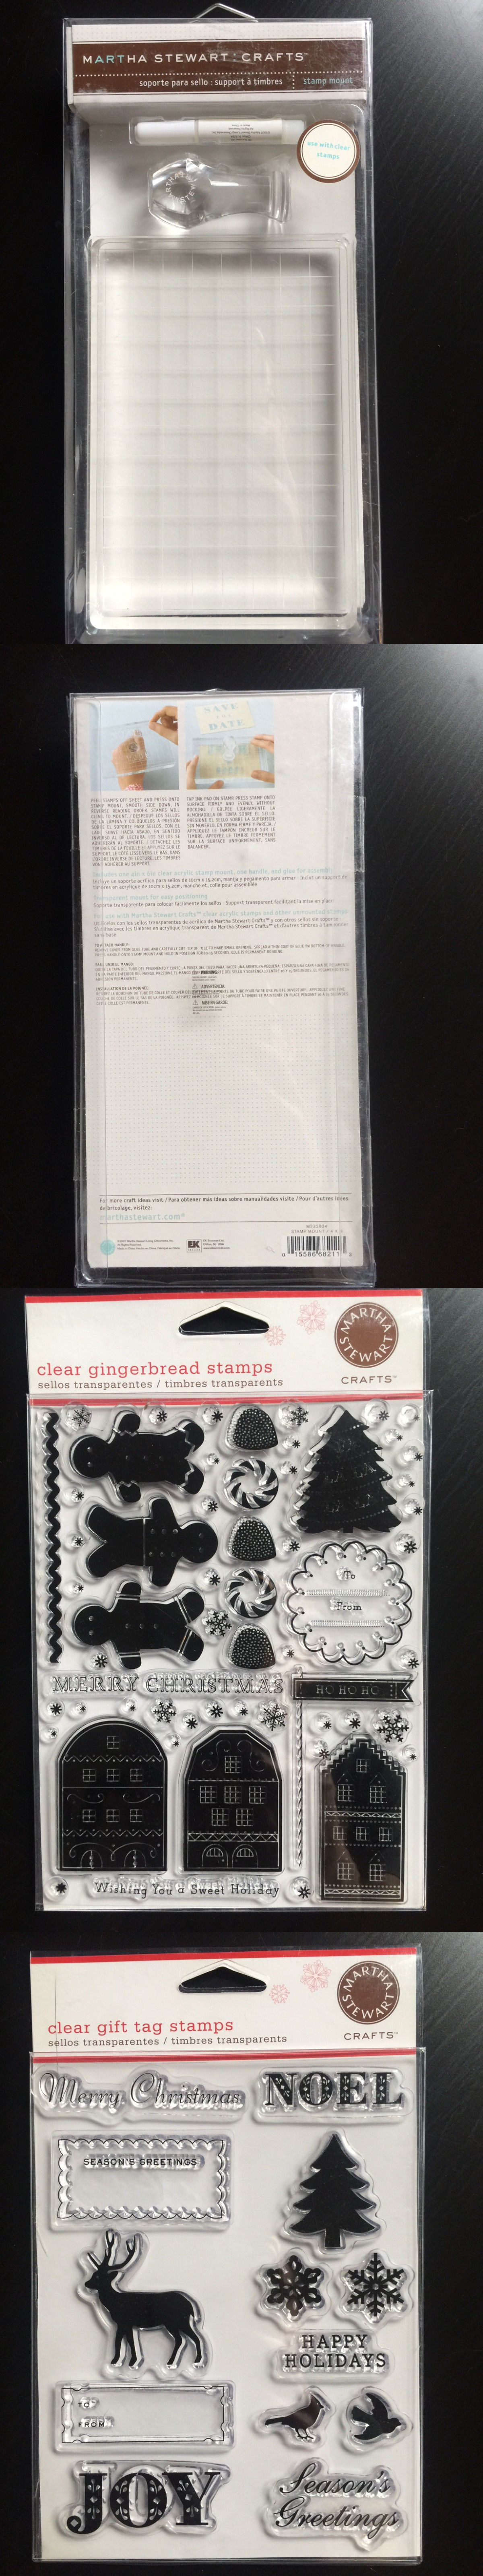 Stamp Handles And Mounts 134783 Lot Sale Many Martha Stewart Clear Stamps Mount Set BUY IT NOW ONLY 35 On EBay